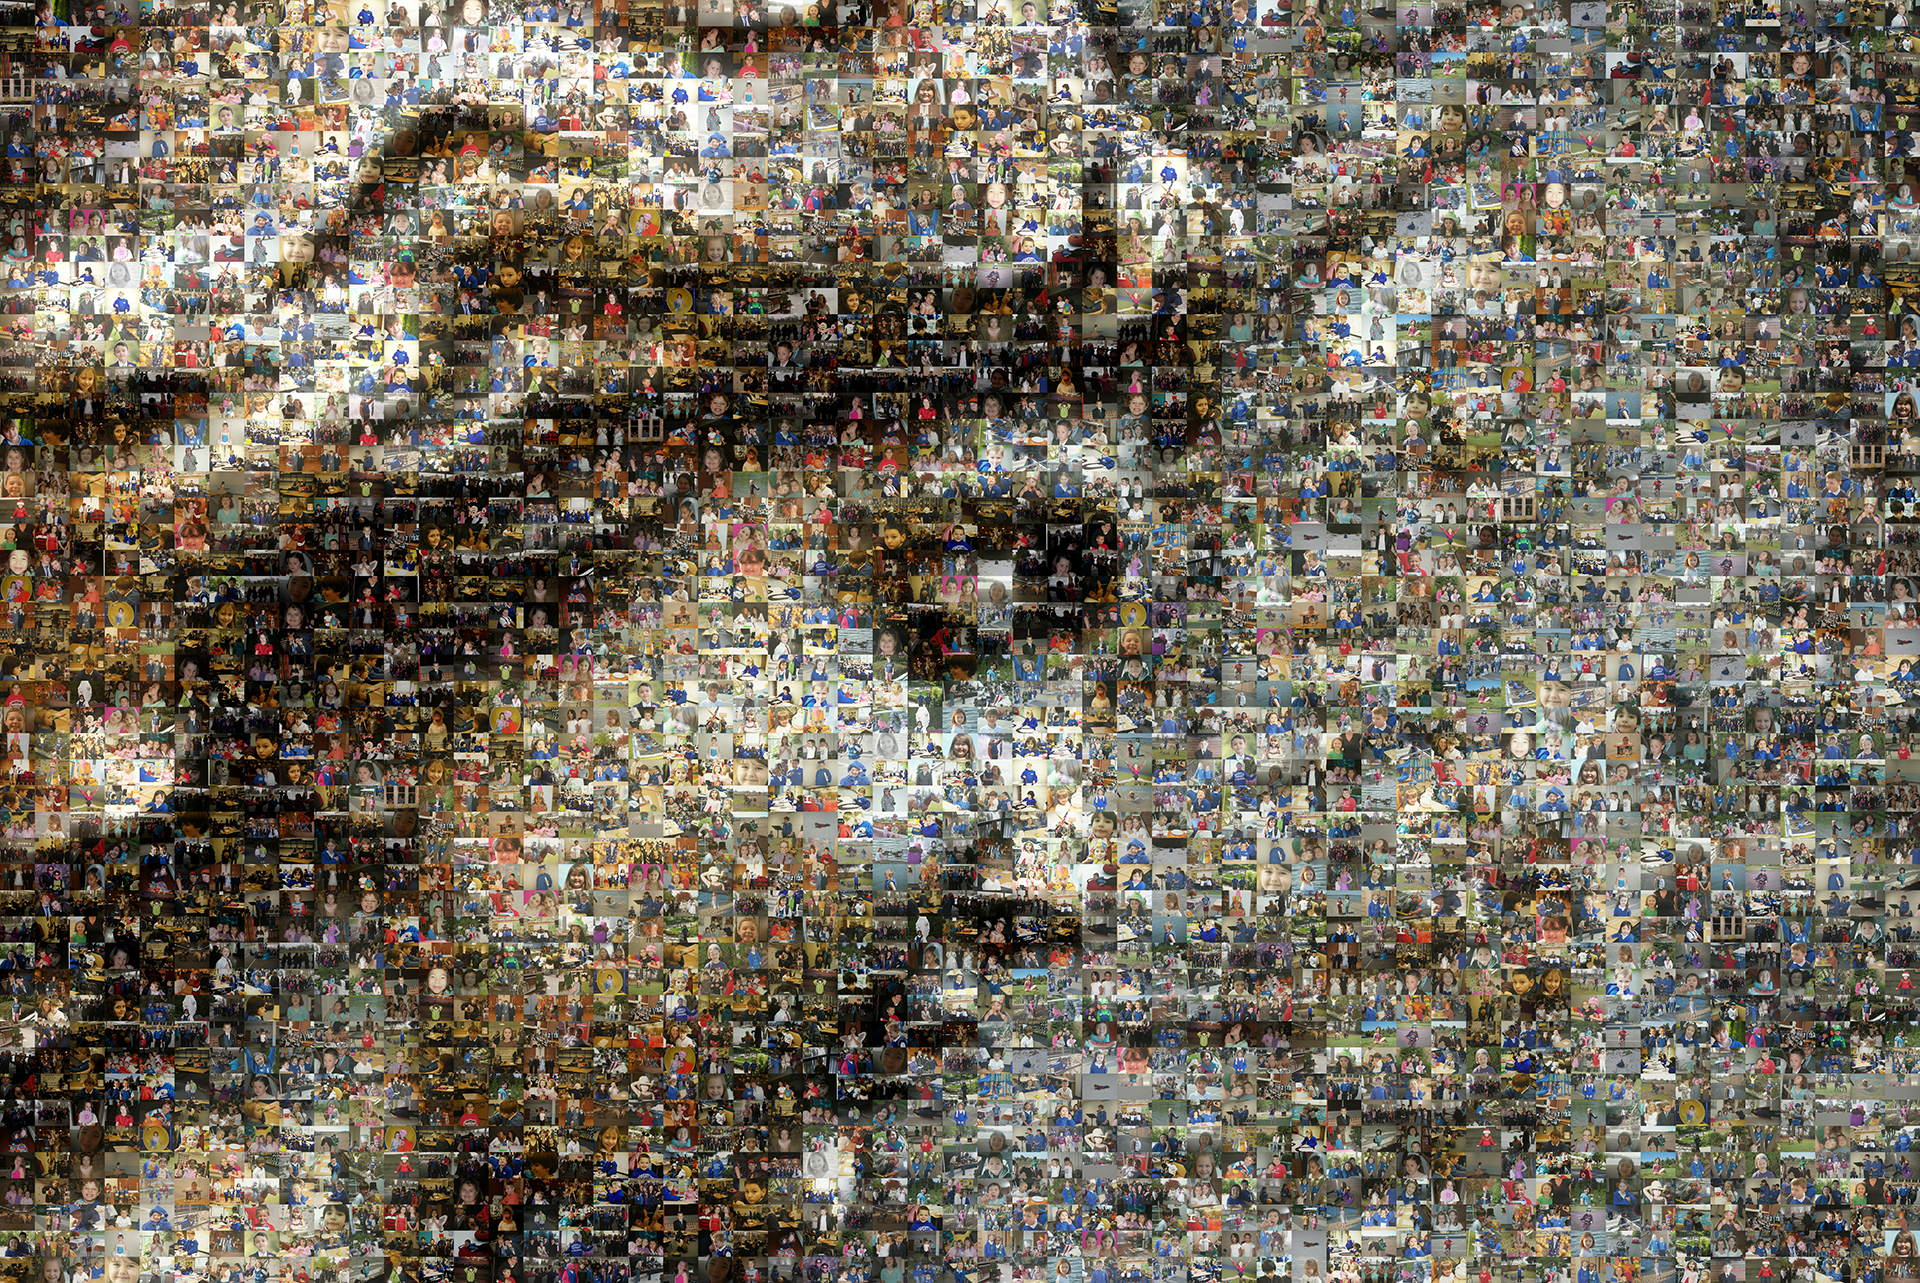 photo mosaic a carving from the side of a school building was used as the source image with 442 student photos for the cell images